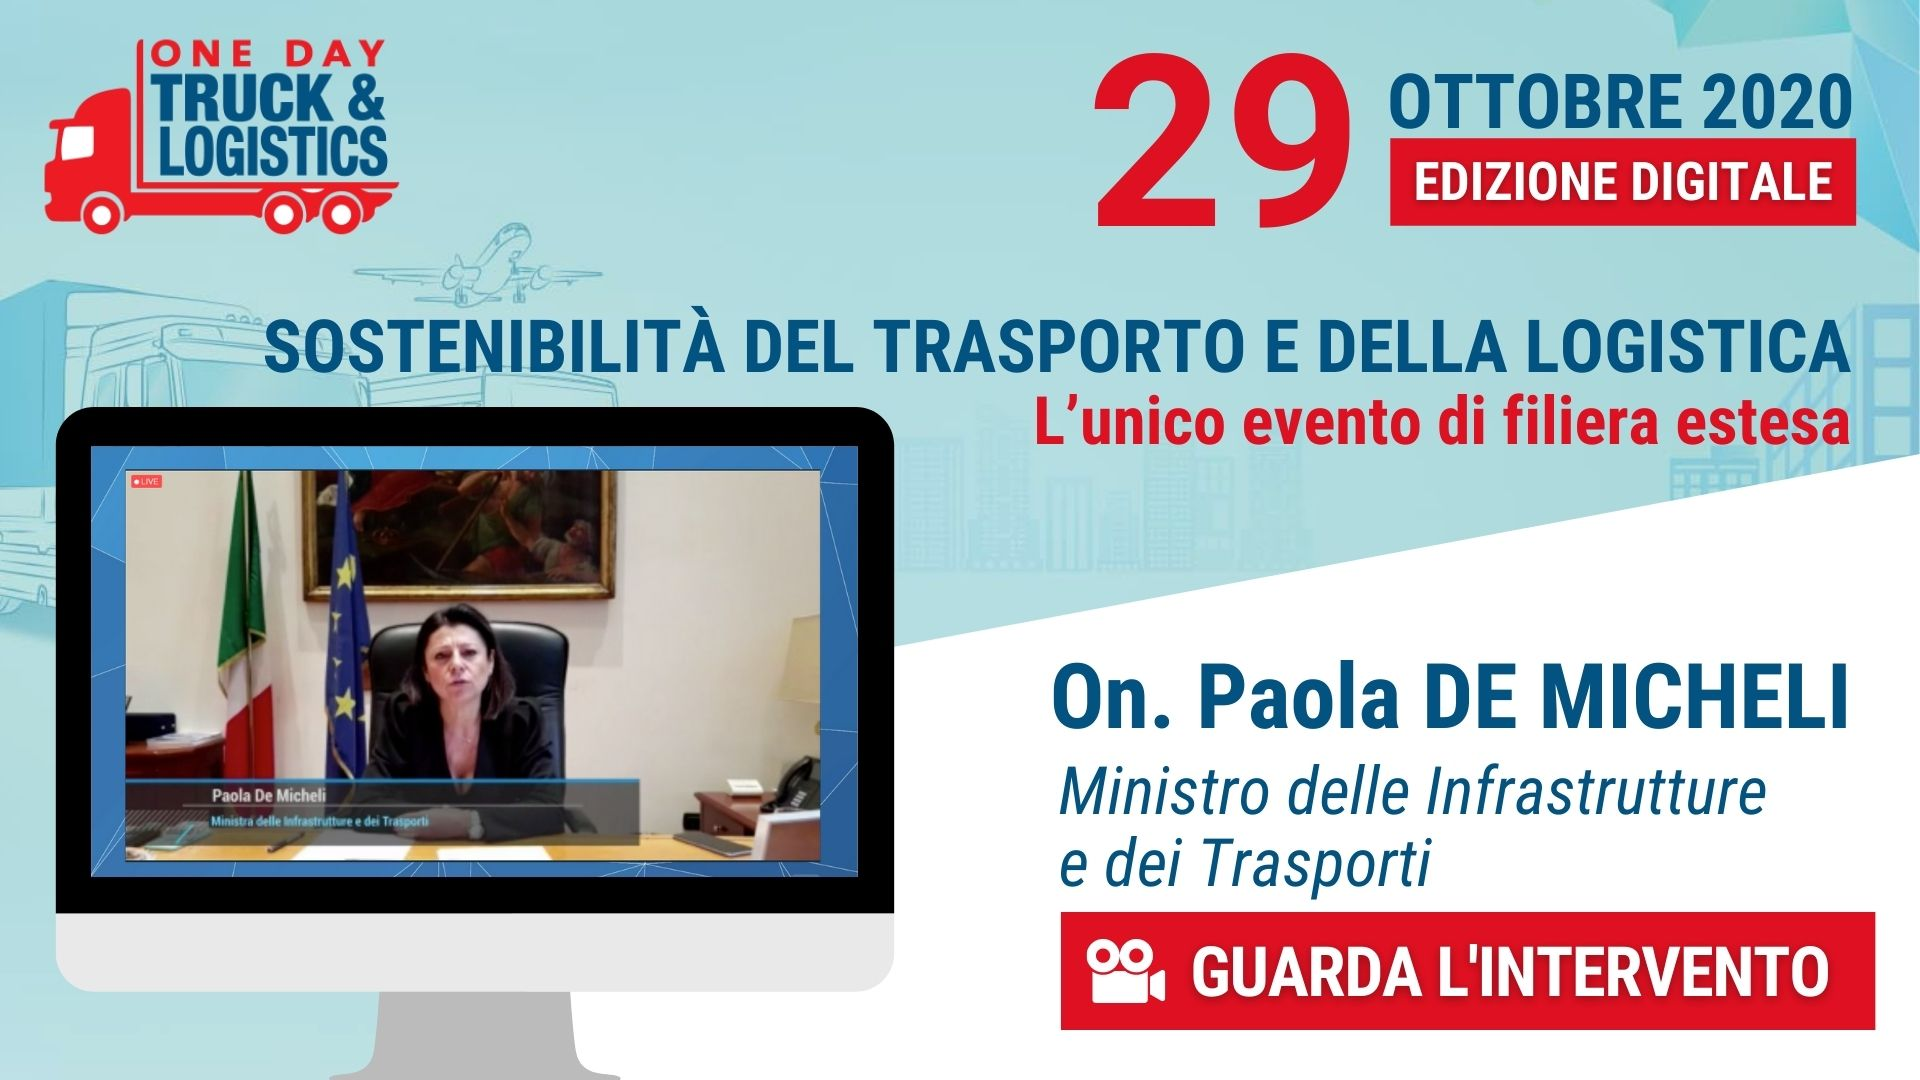 one day truck and logistics On v2. Paola DE MICHELI